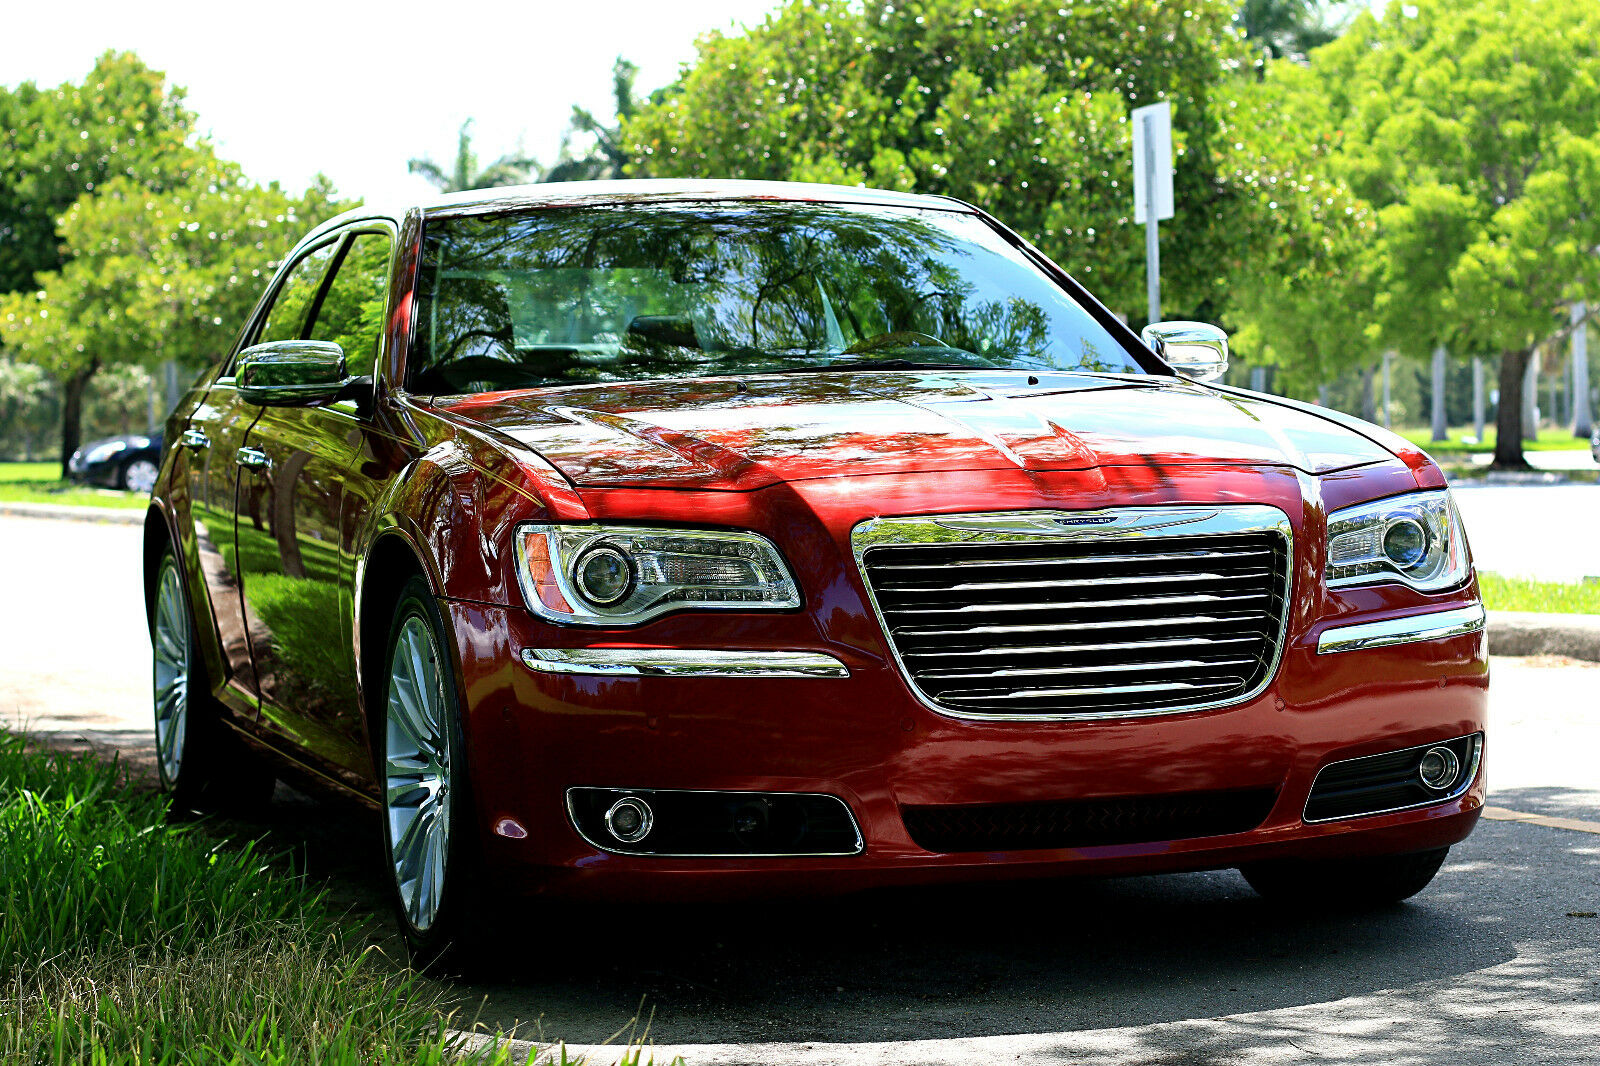 2013 chrysler 300 c hemi leather s 2014 2012 dodge charger. Black Bedroom Furniture Sets. Home Design Ideas